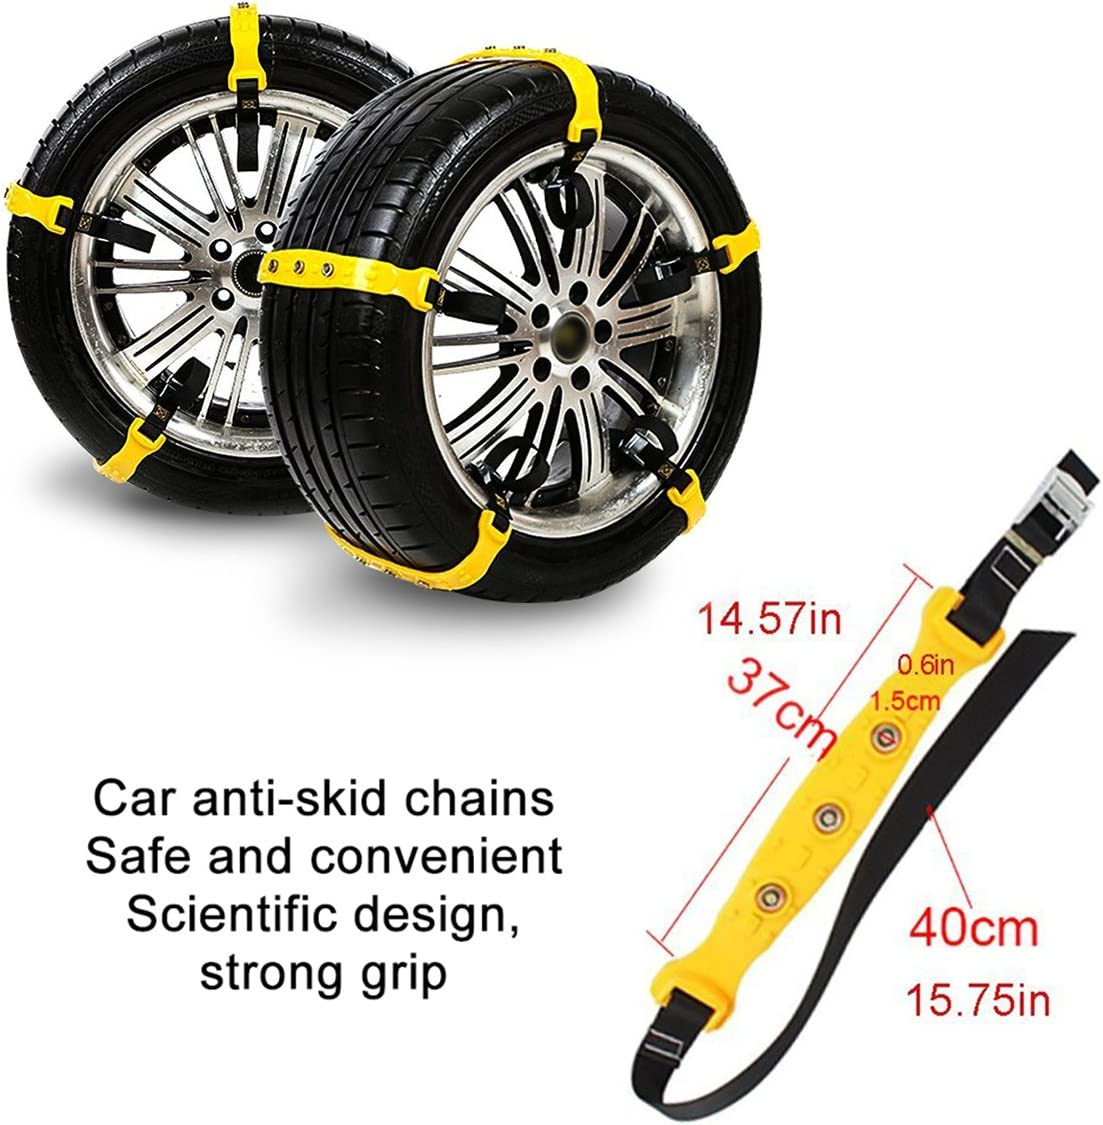 Metyere Car Auto Tire Snow Chains Winter Easy Install Tire Anti-Skid Belt Car-Styling SUV Tire Chain Anti Slip Snow Chains Adjustable Anti-Skid Emergency Snow Tire Chains